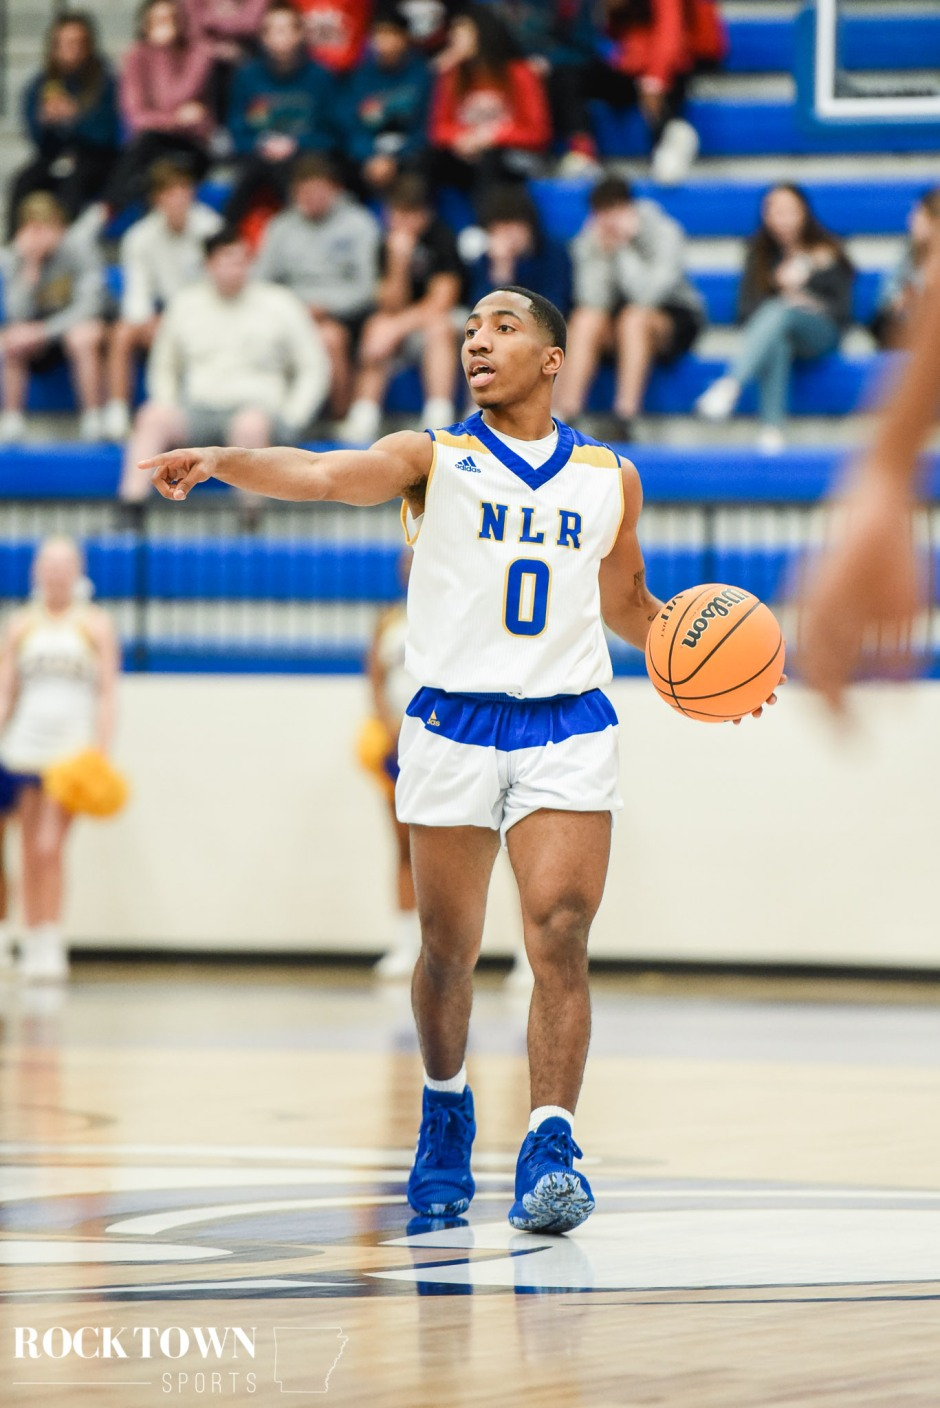 NLR_conway_bball_2020(i)-22